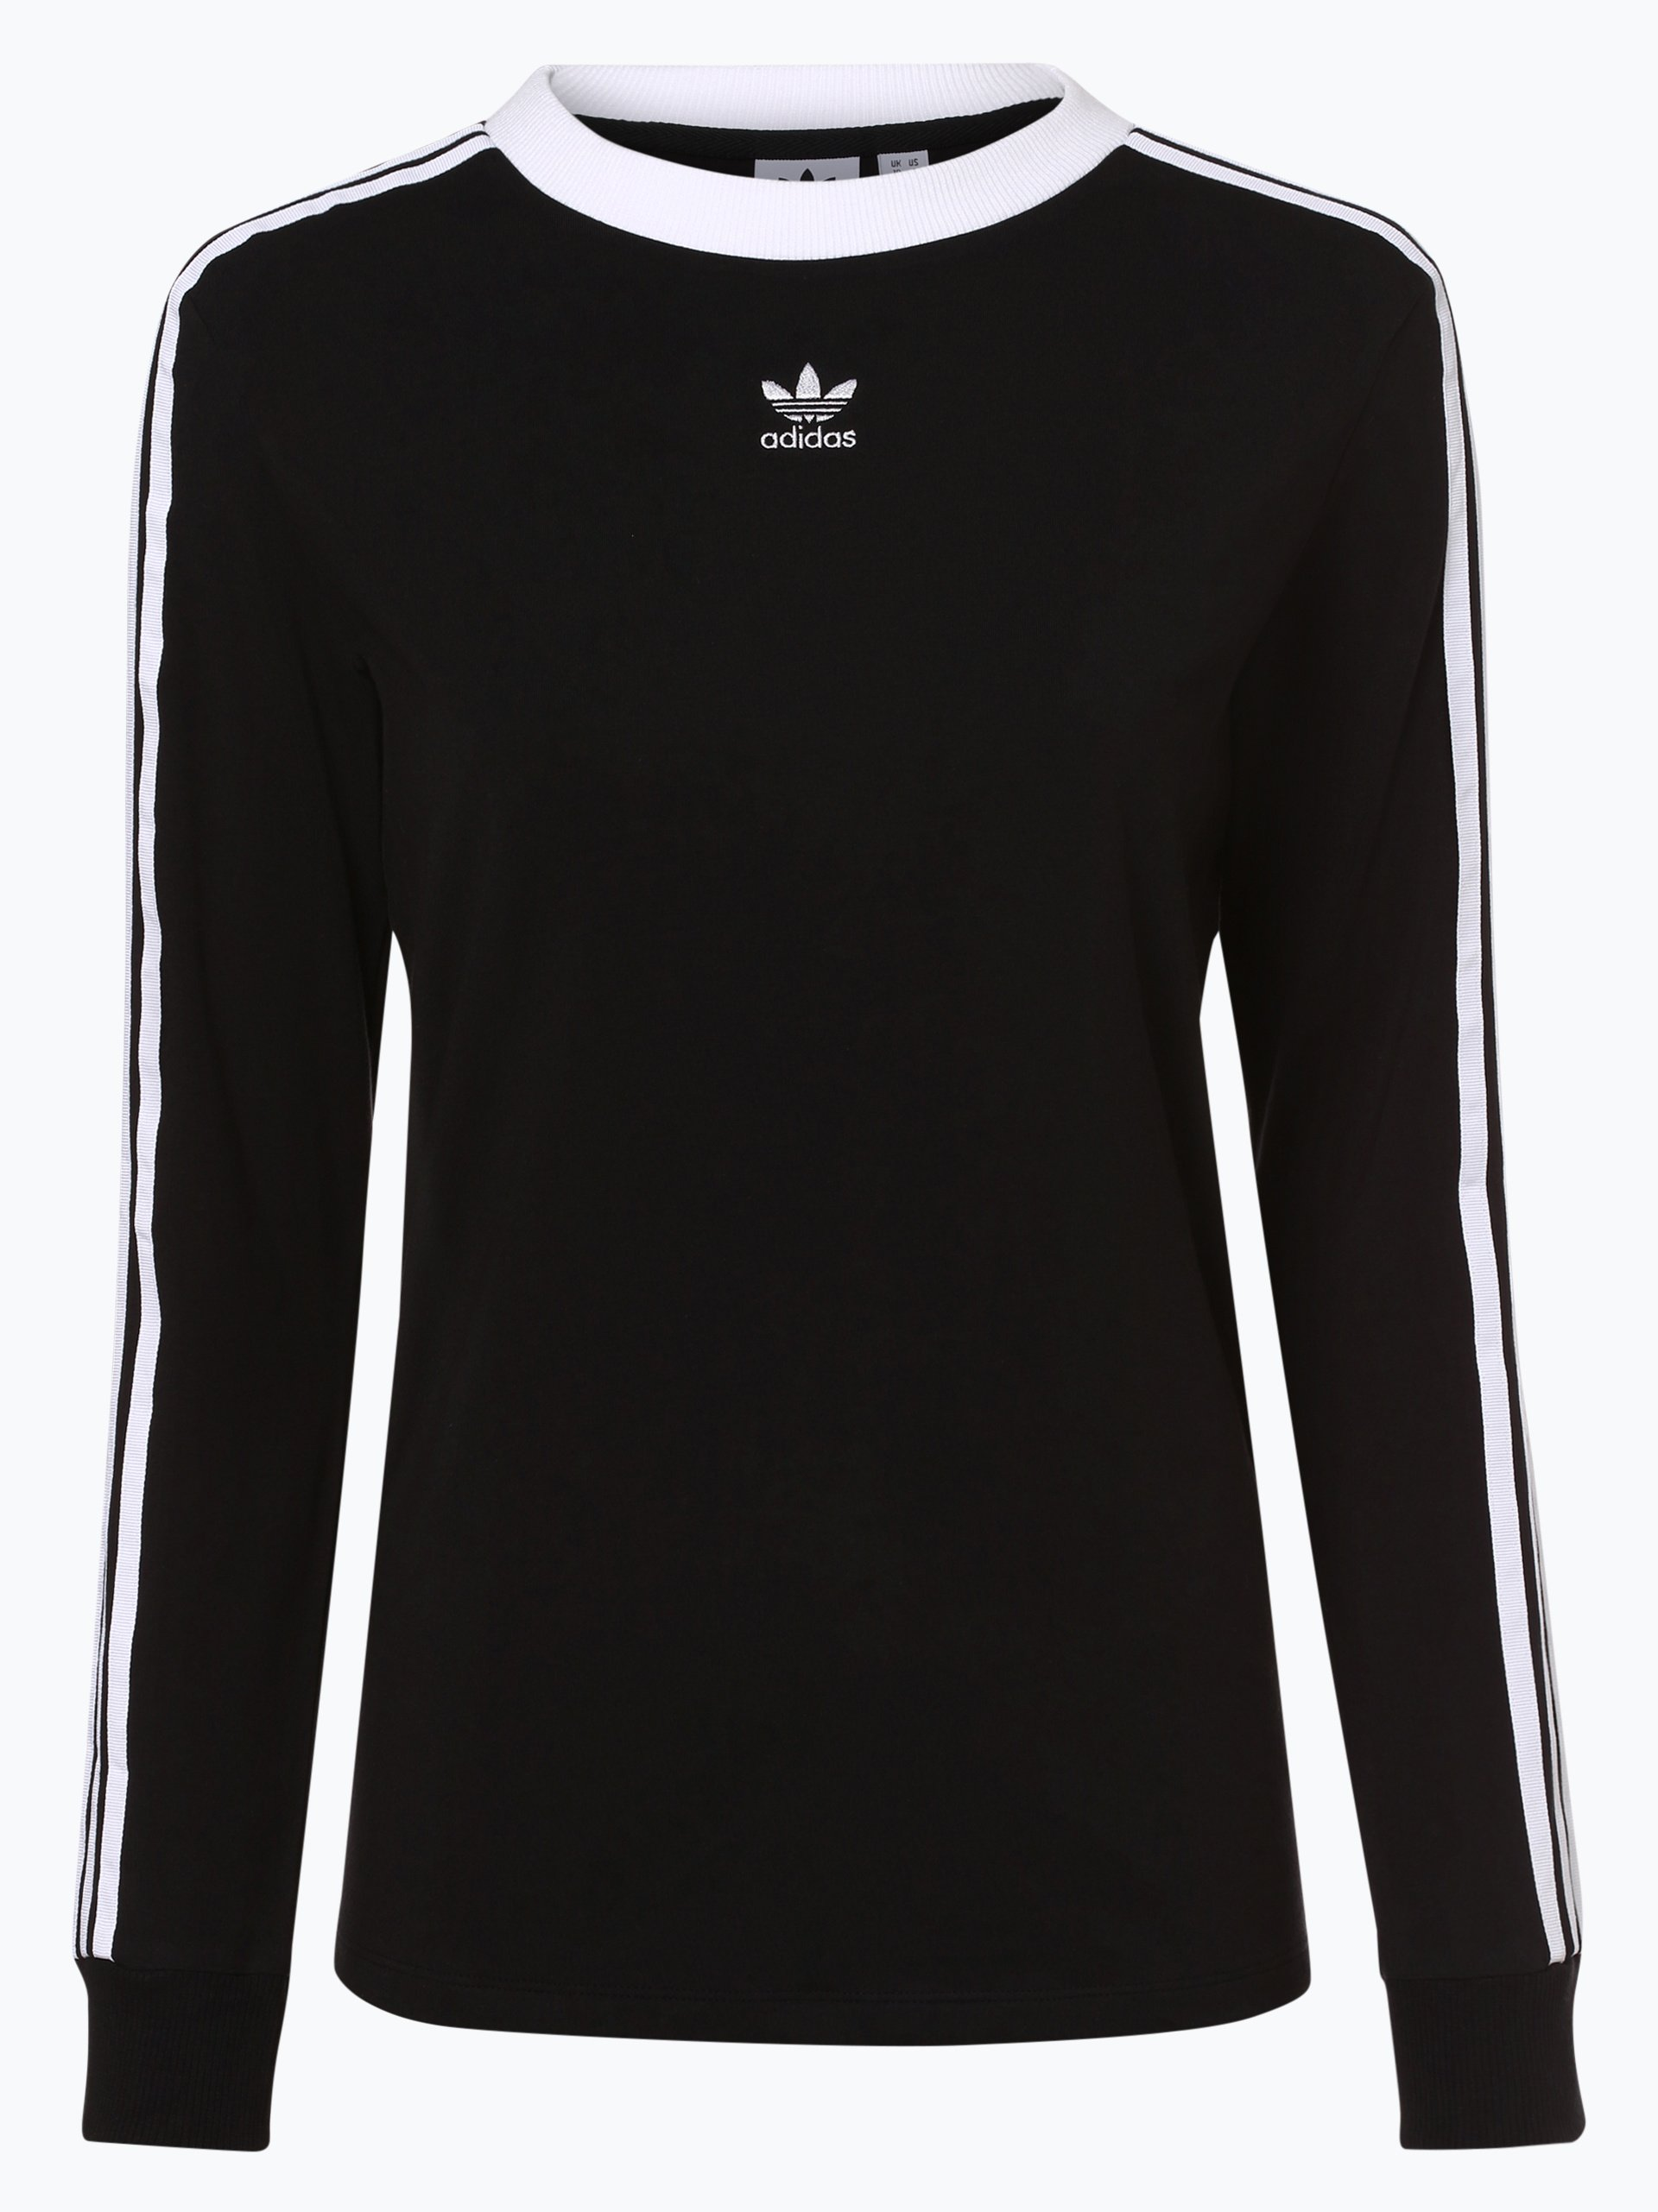 adidas originals damen langarmshirt online kaufen peek. Black Bedroom Furniture Sets. Home Design Ideas